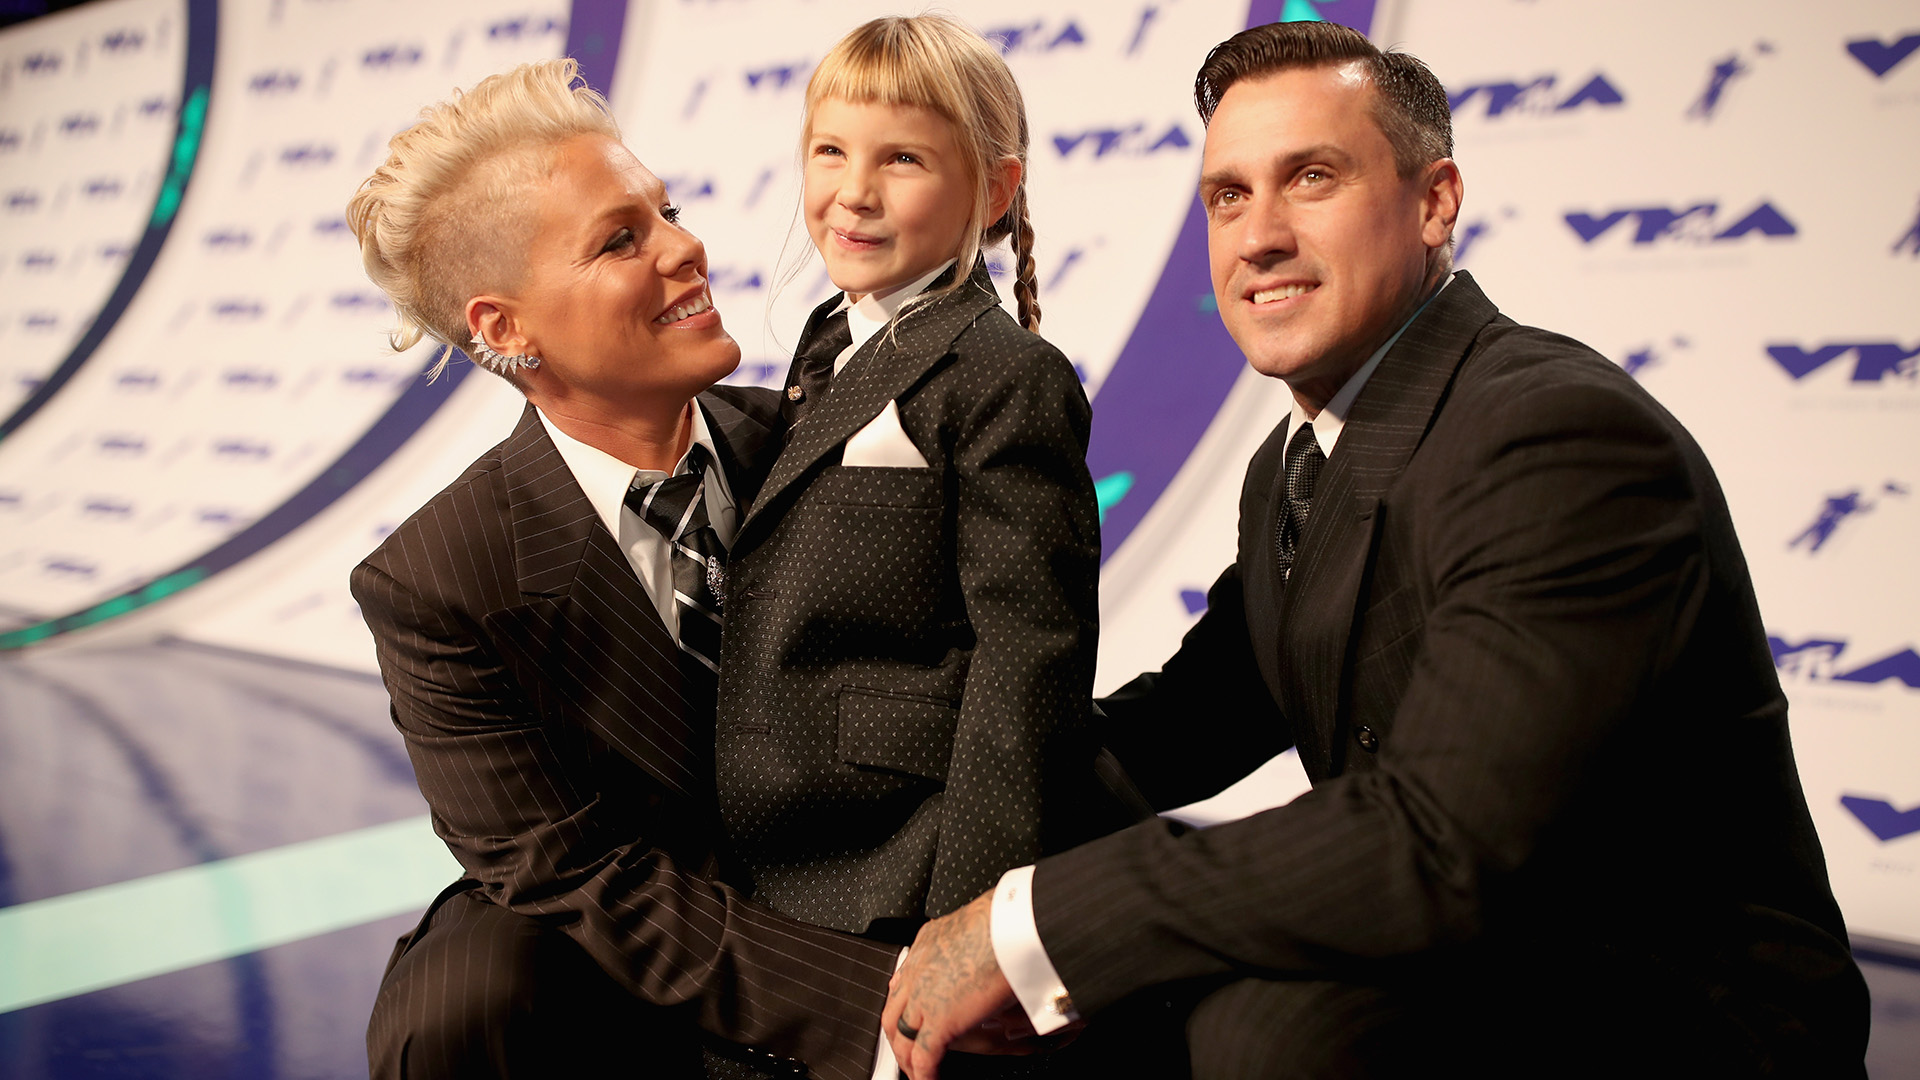 Pink S Family Arrives To The Vmas In Matching 3 Piece Suits